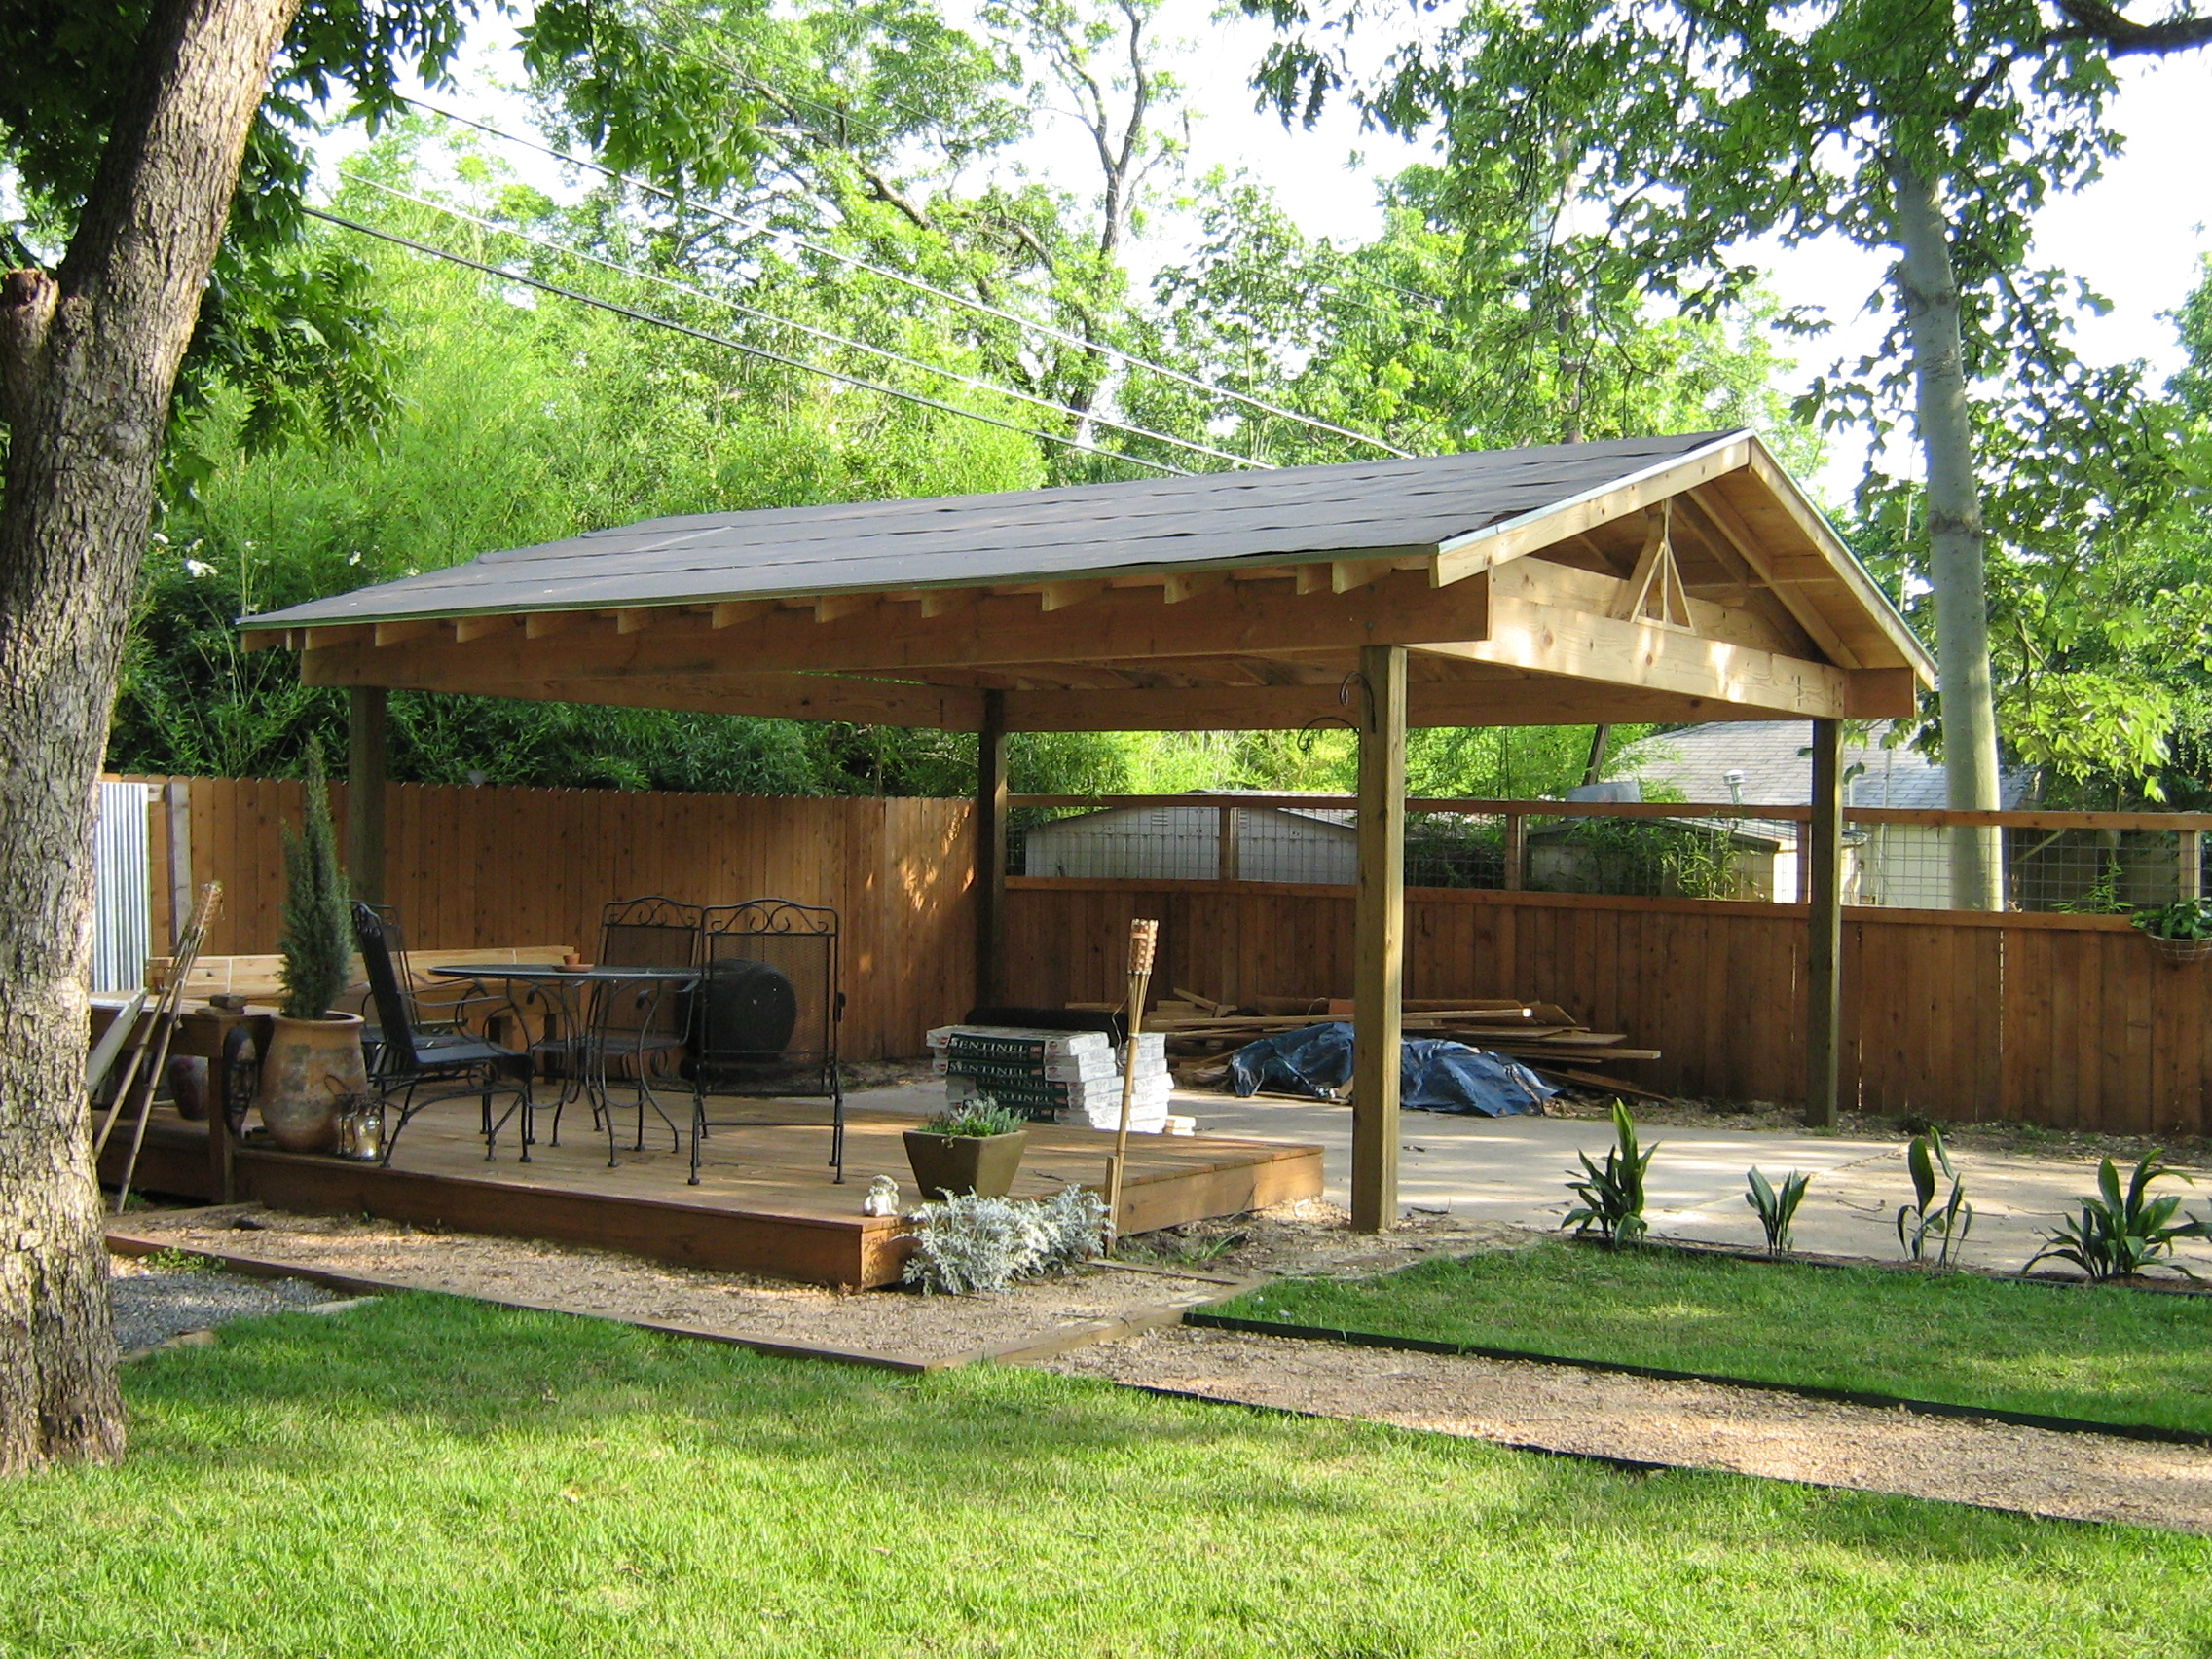 Wood Carports Photos Native Home Garden Design